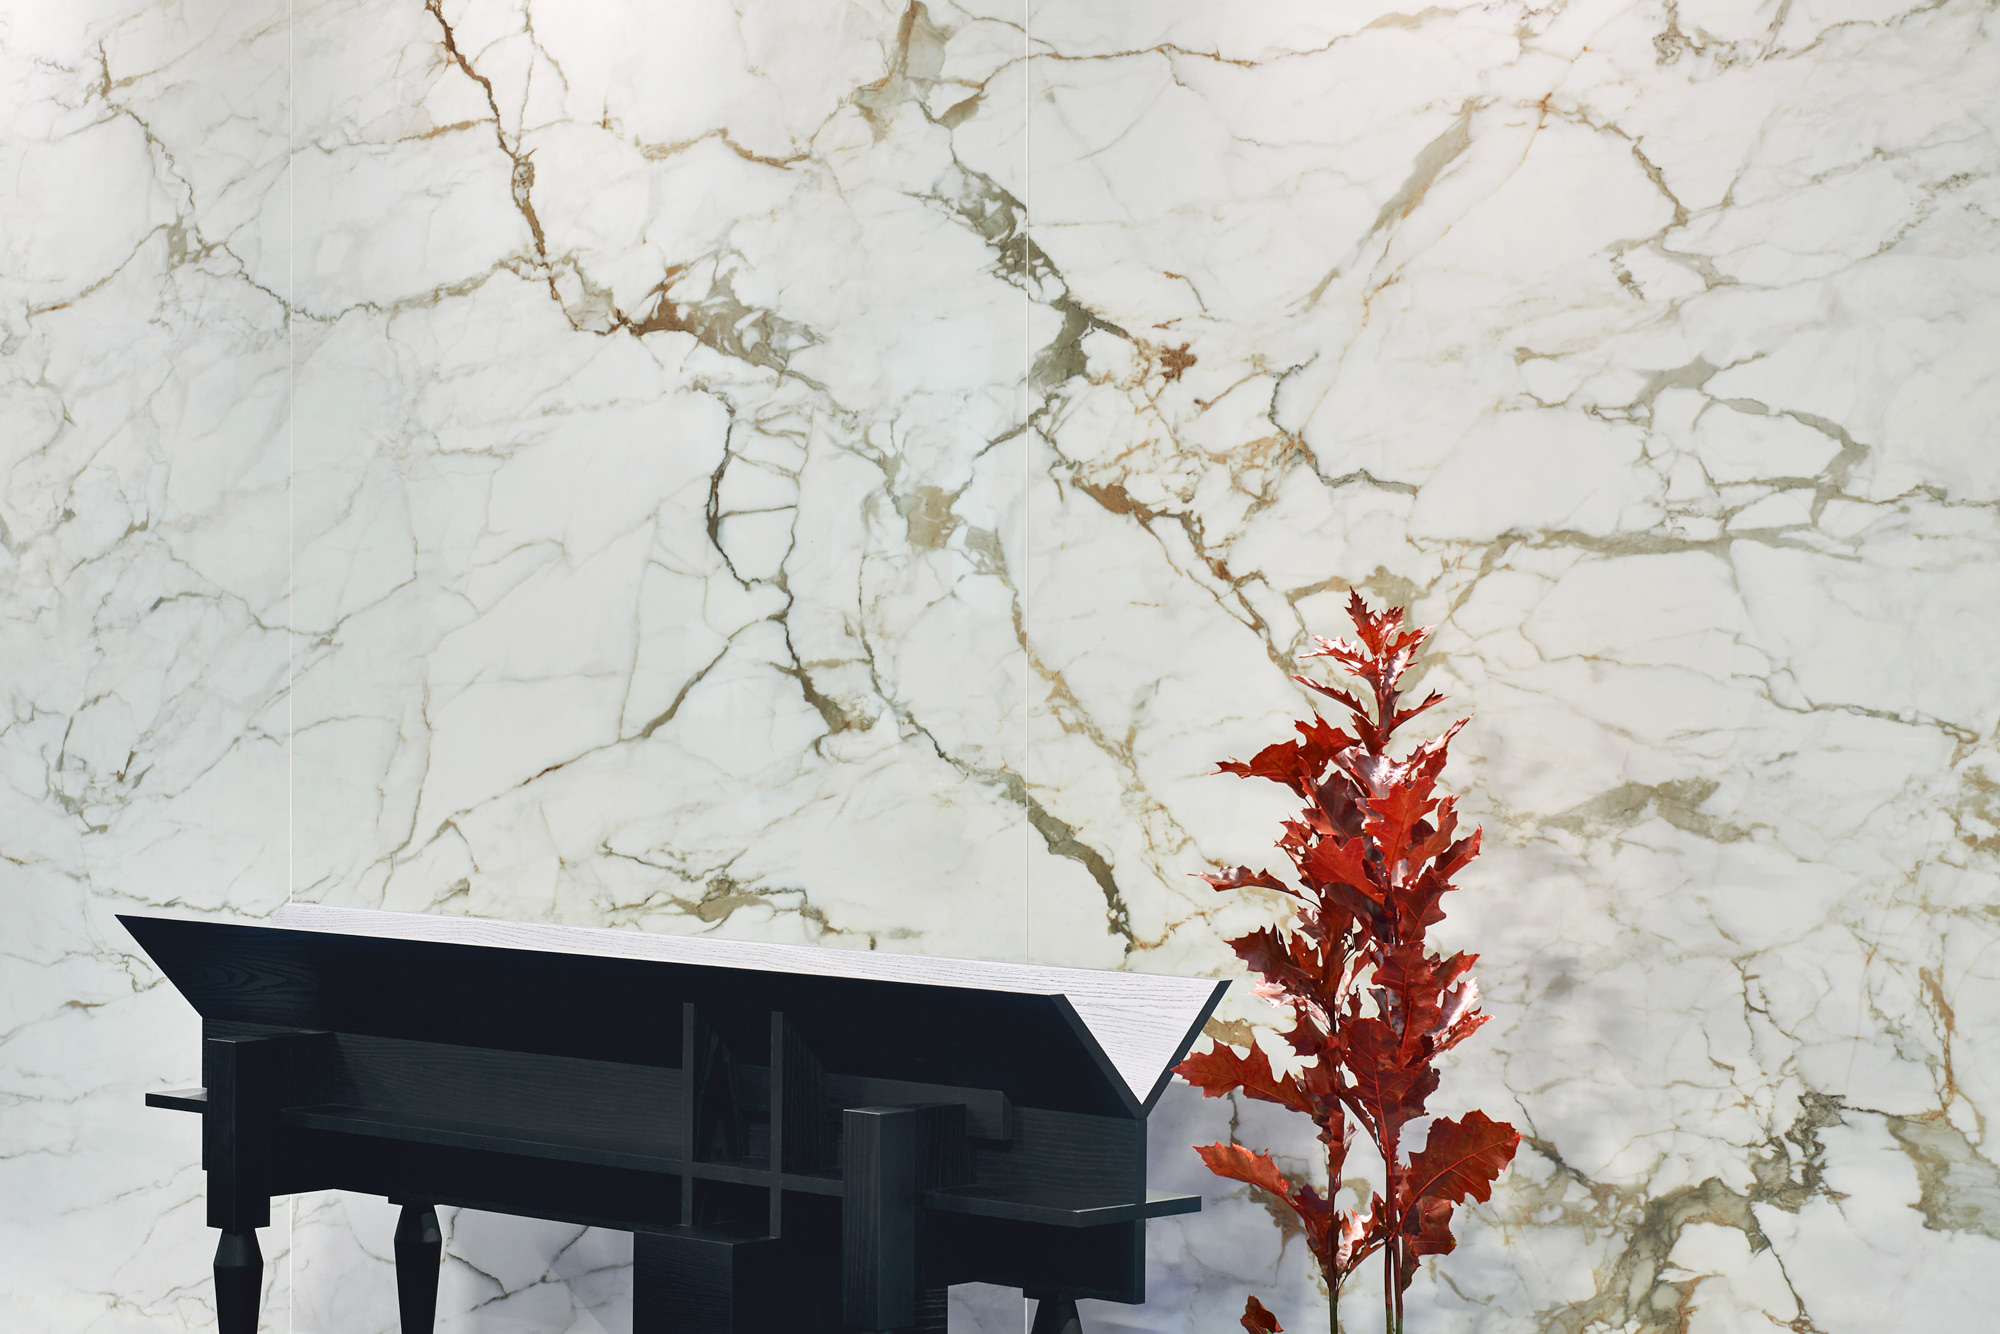 porcelain tile images: Majestic range high quality photo